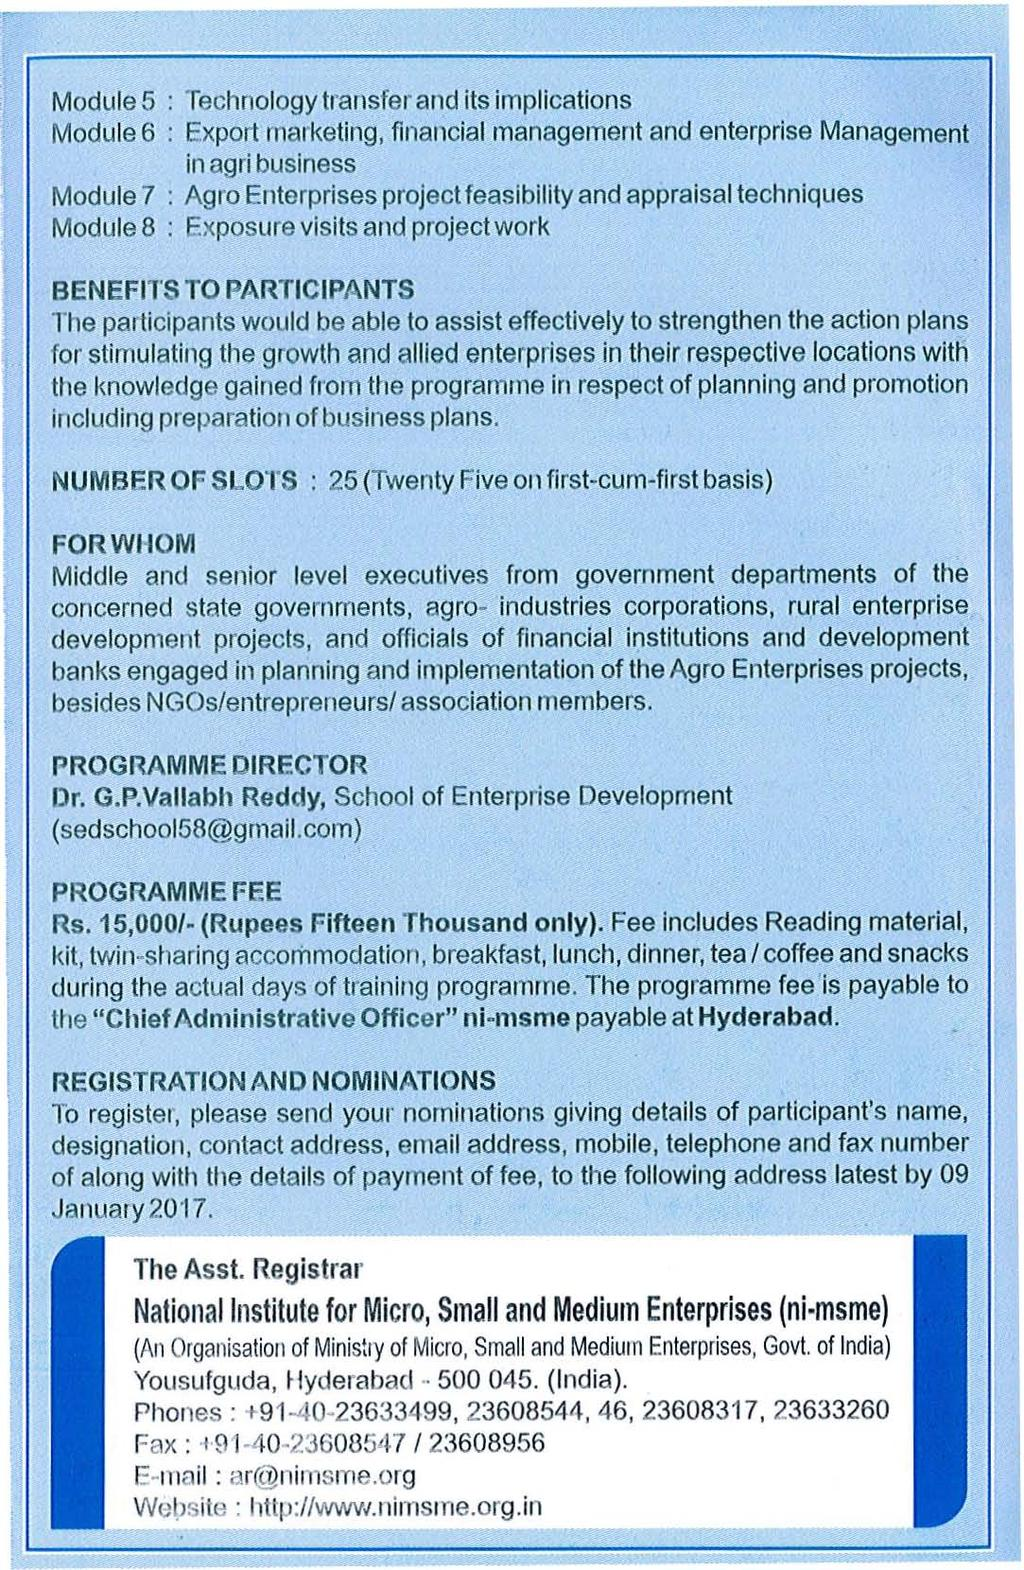 SuiJ : Request for nominations for the Programme on